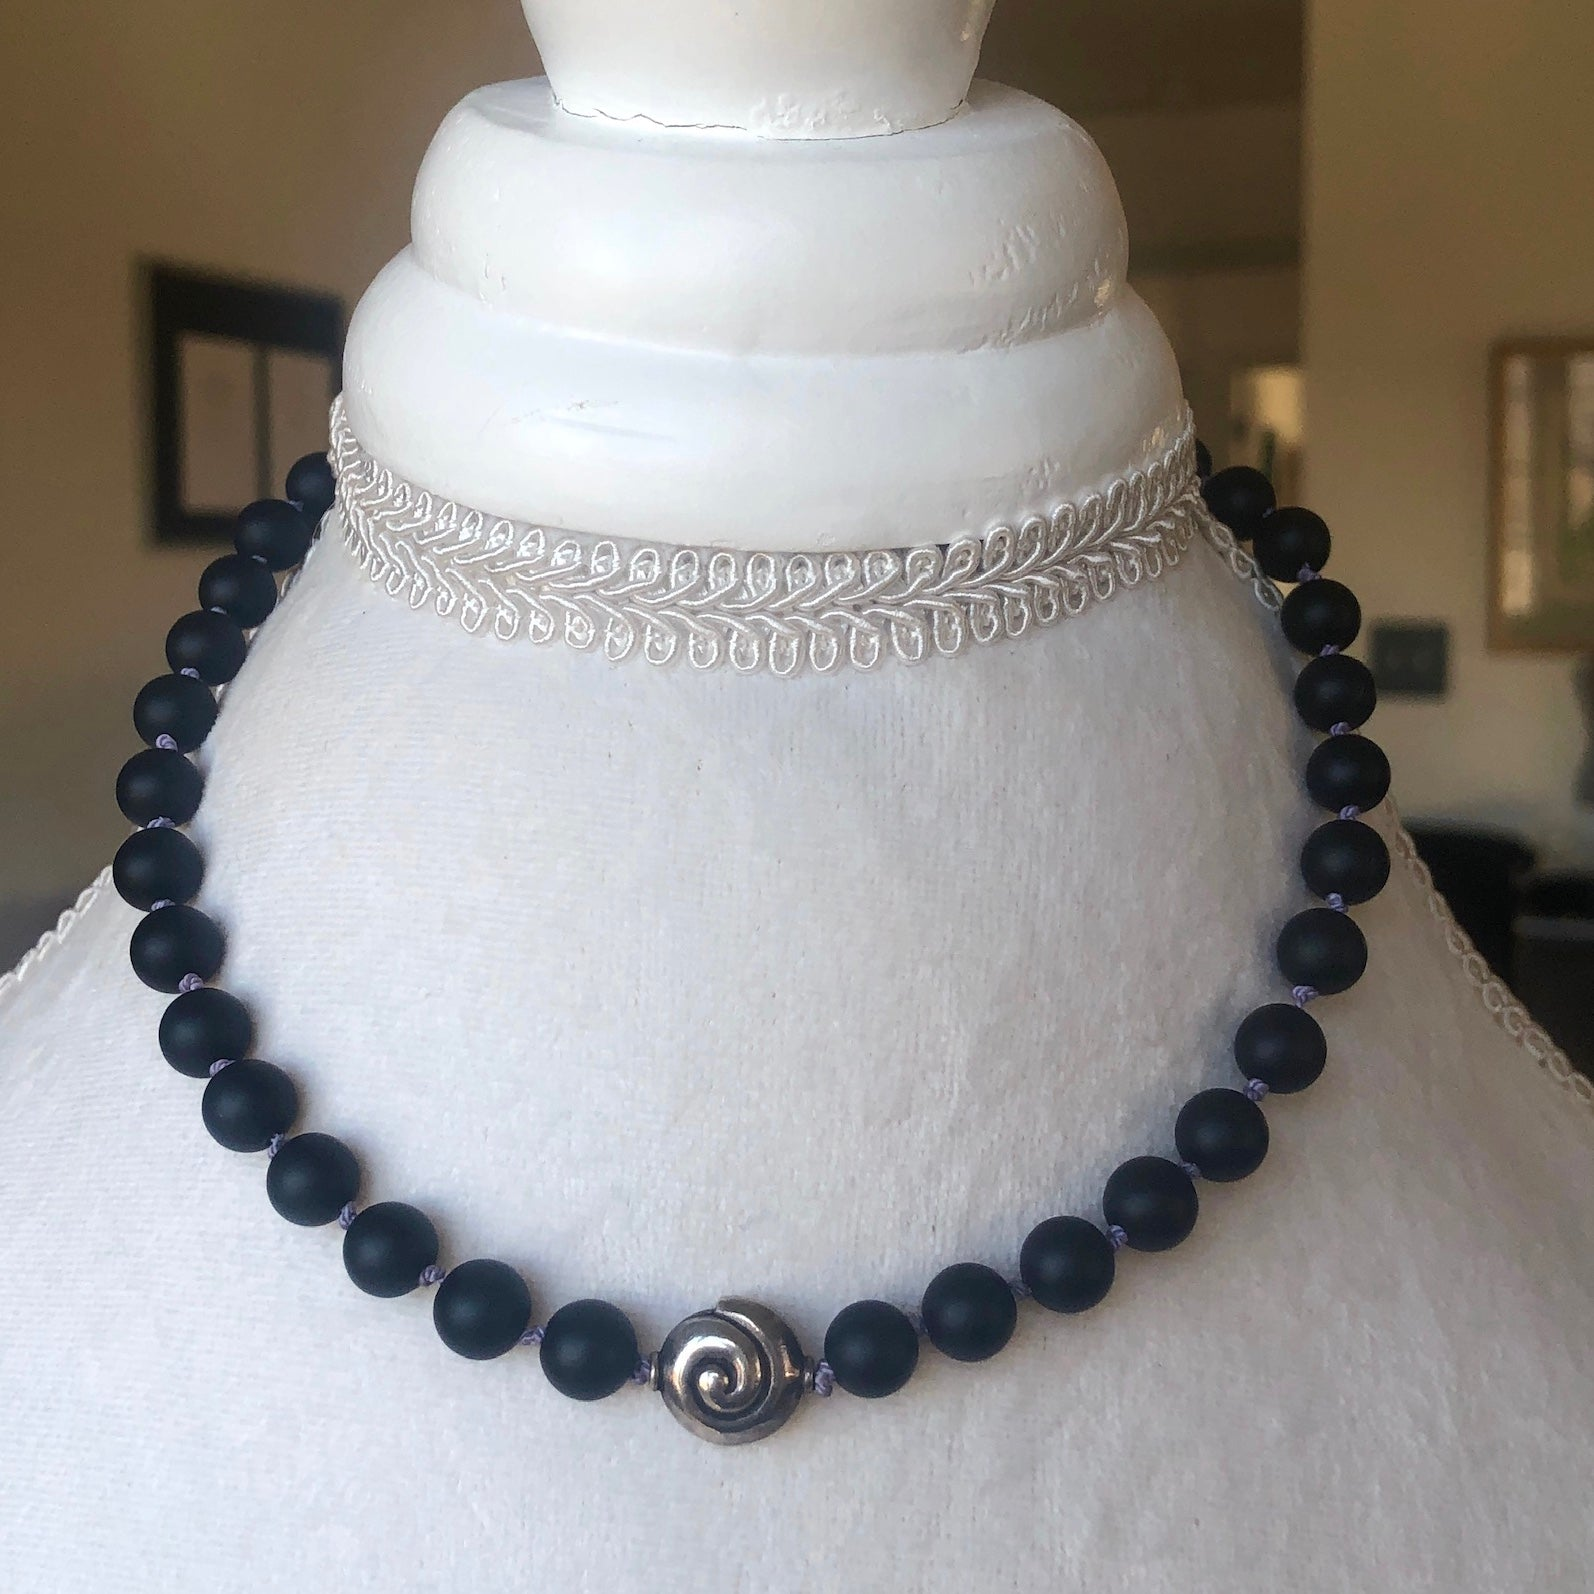 Christine Black Jasper Throat Chakra Choker Necklace